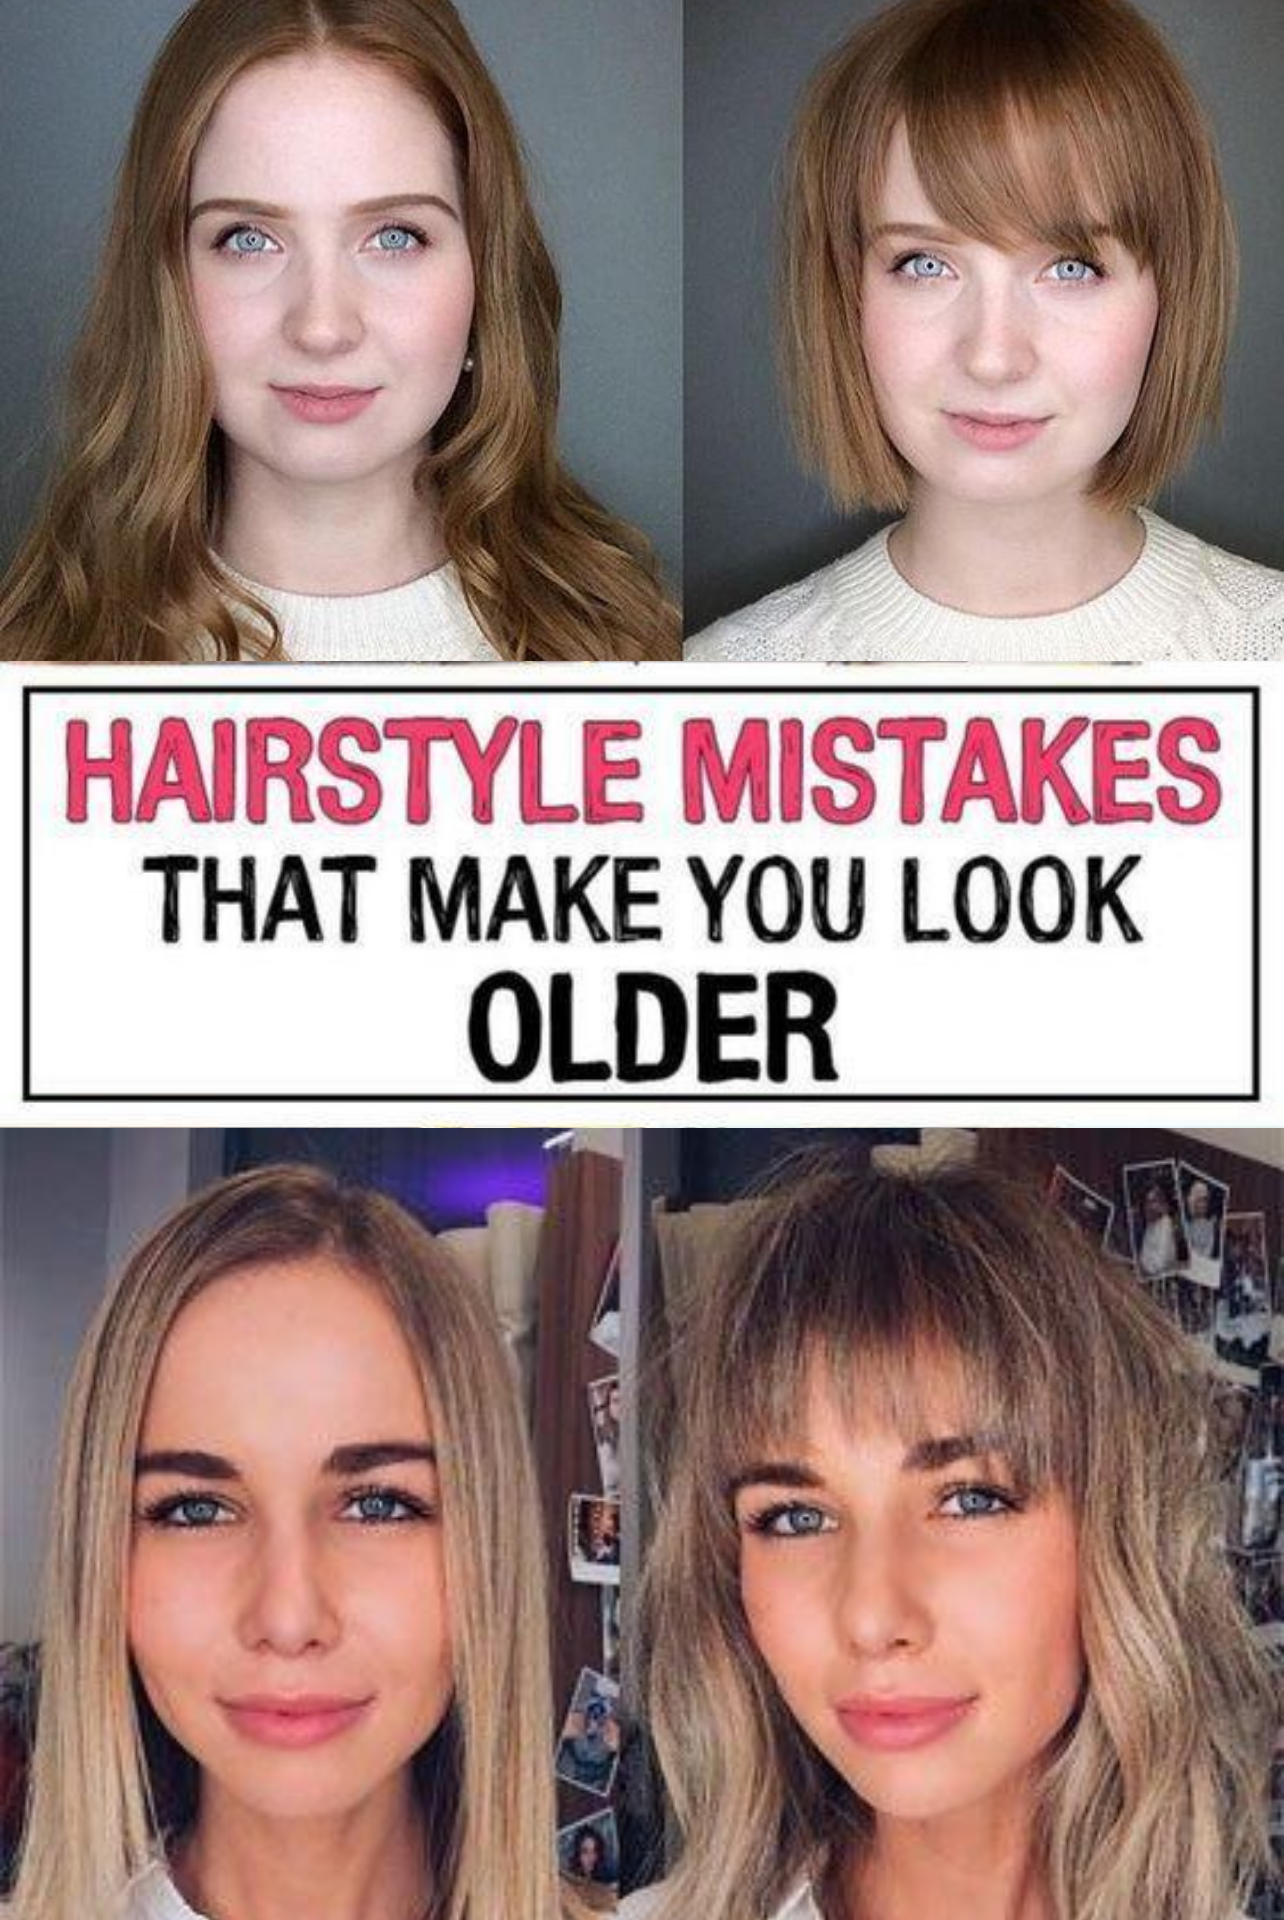 37 Hairstyle Mistakes That Are Aging You In 2020 Hairstyle Hair Advice Hair Mistakes